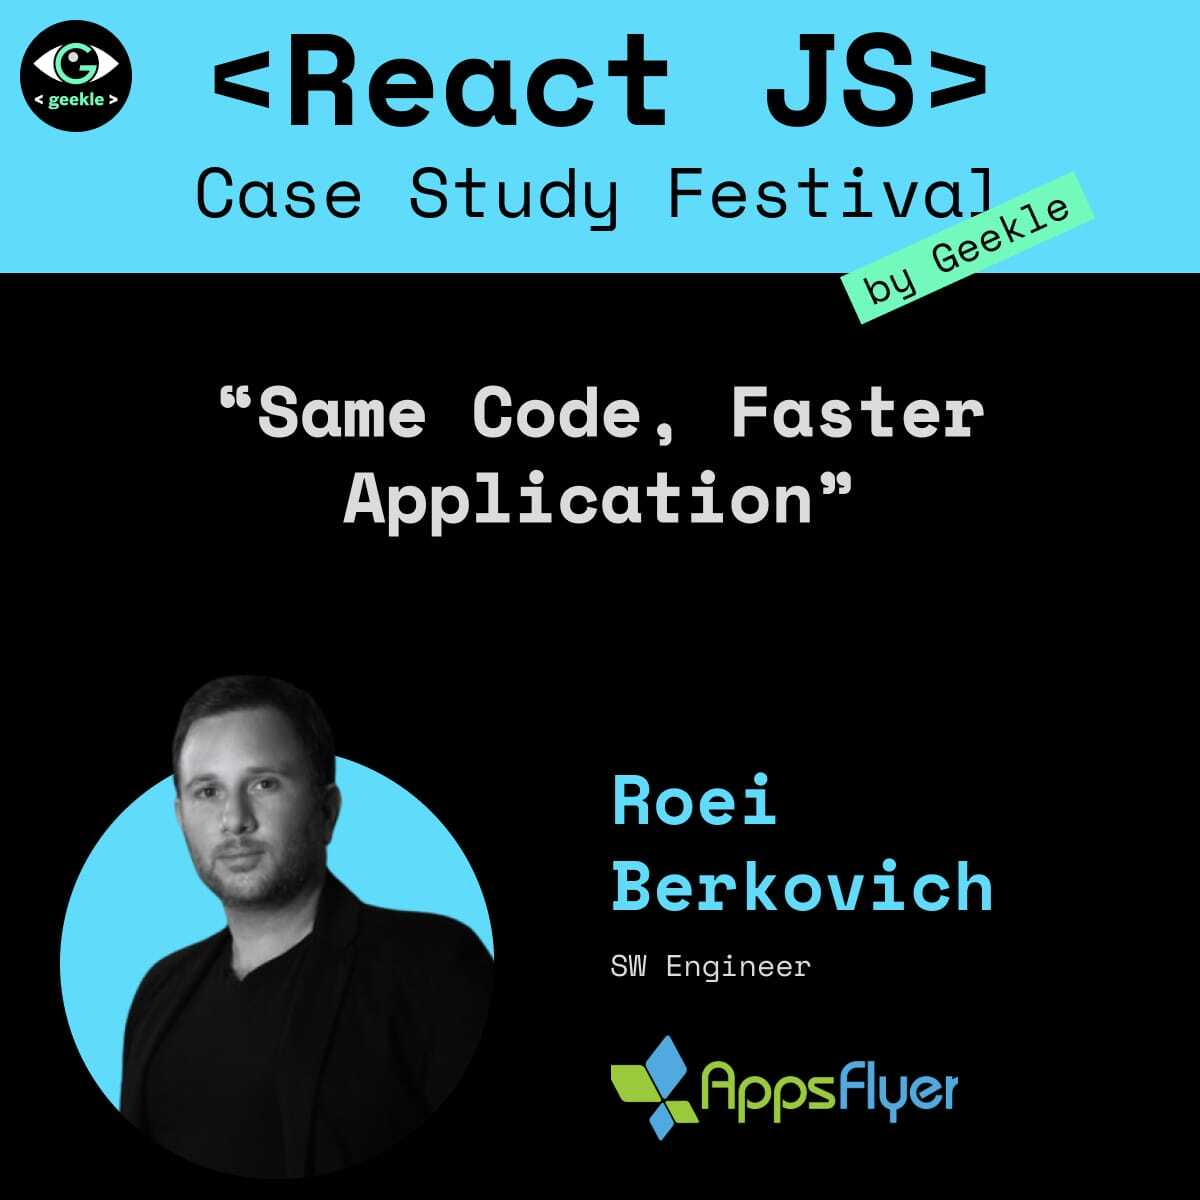 Join our very own @BerkovichRoei at the @GeekleOfficial <React JS> Case Study Festival on April 27th at 2:50pm, where he will explain how to split a bundle into multiple bundles and ship it to the user only when needed! react.geekle.us